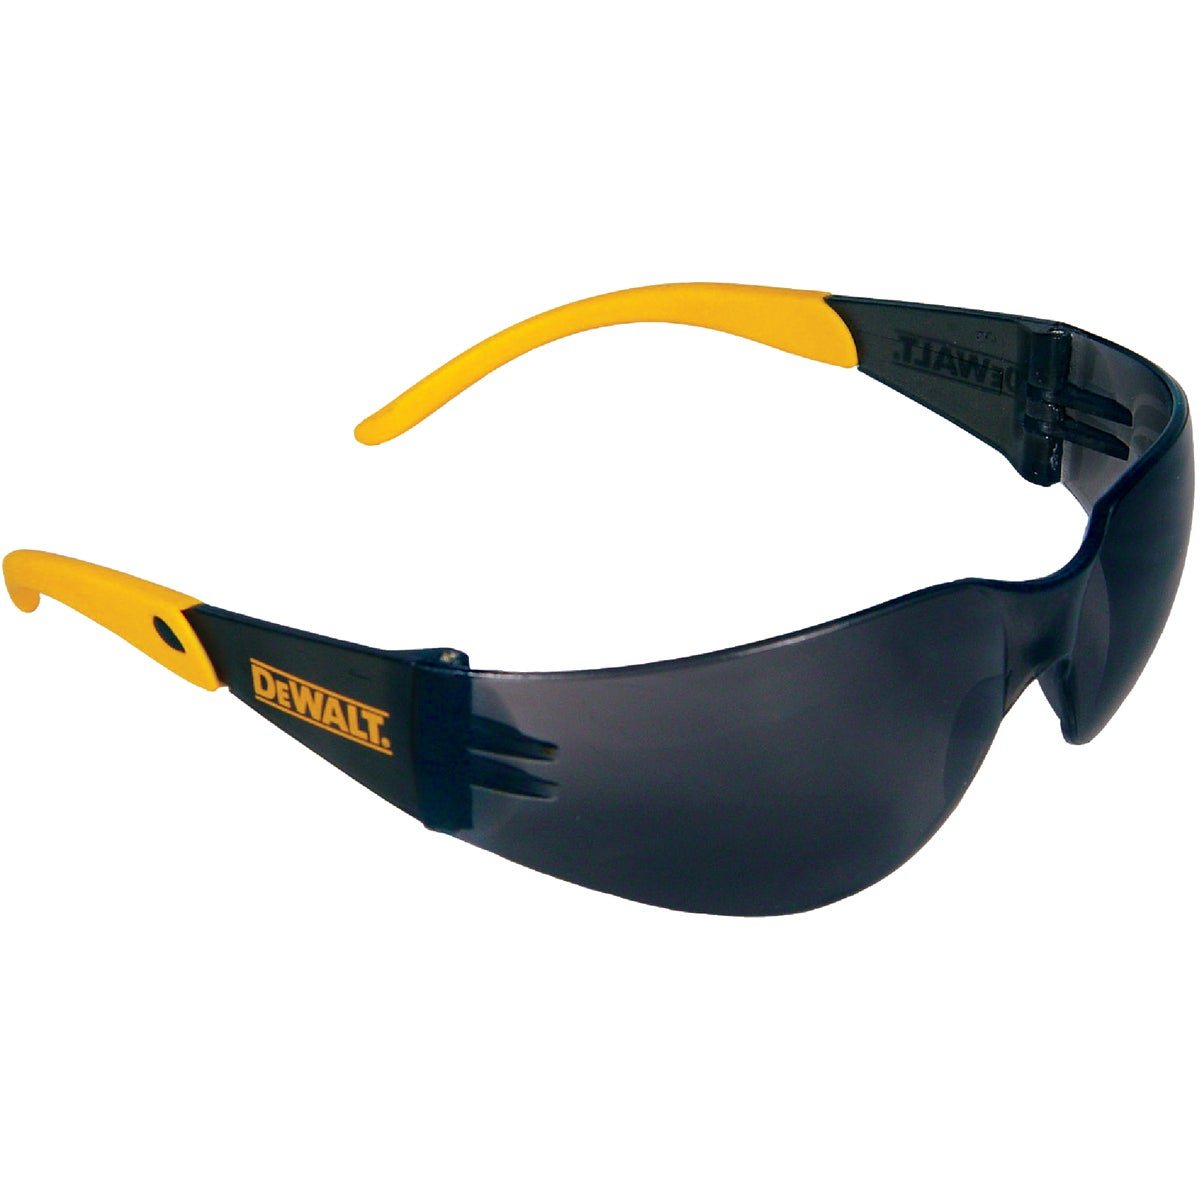 SMOKE SAFETY GLASSES - DPG54-2C by Radians